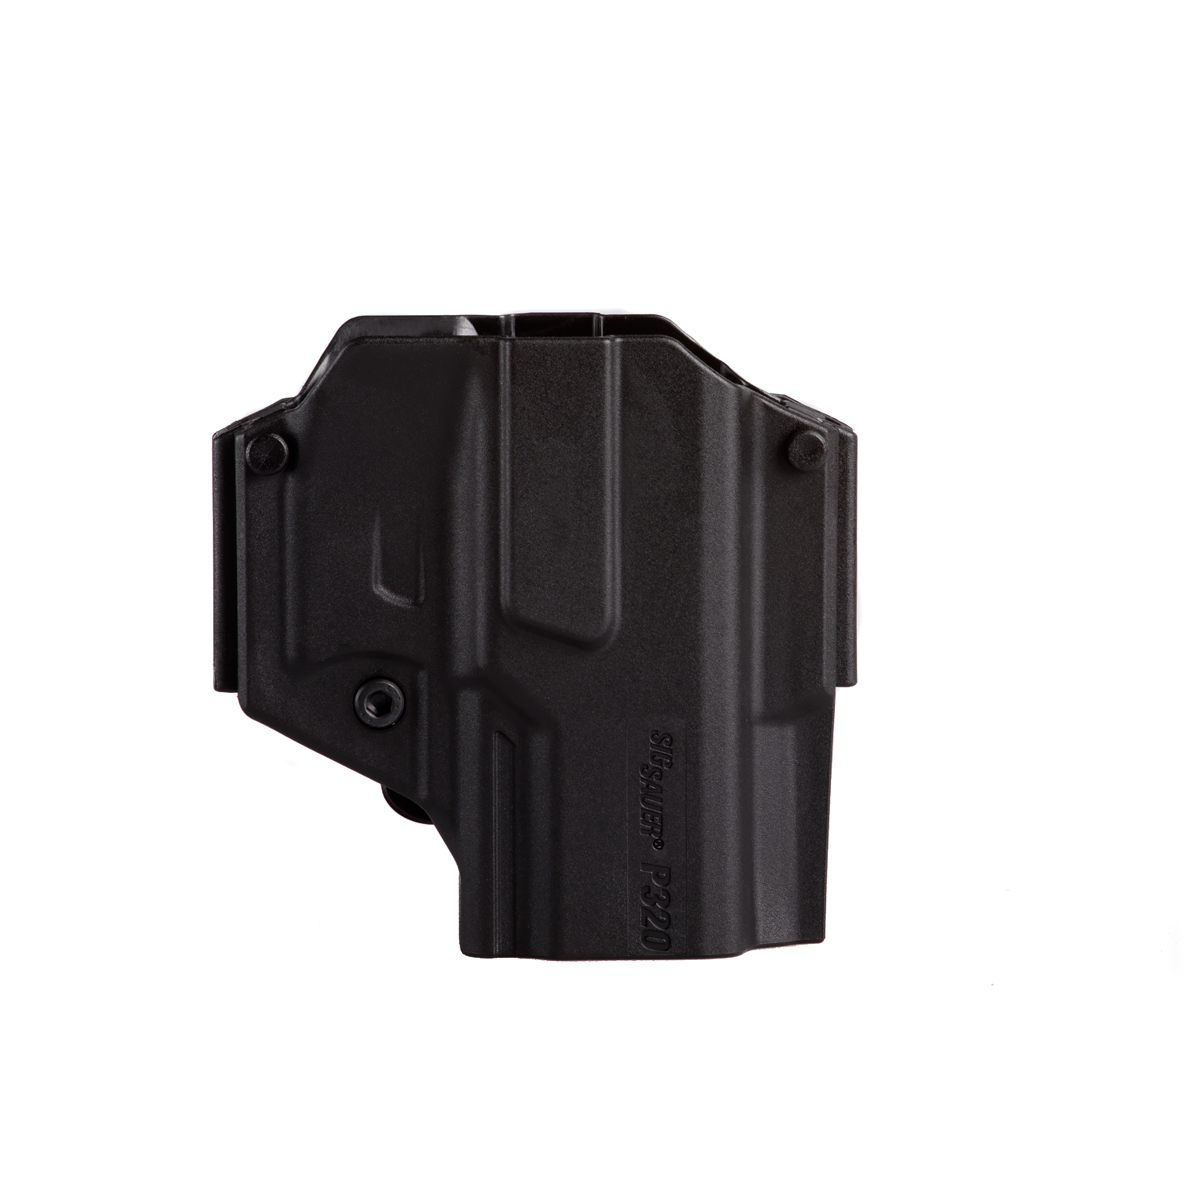 MORF X3 Polymer Holster for Sig Sauer P320